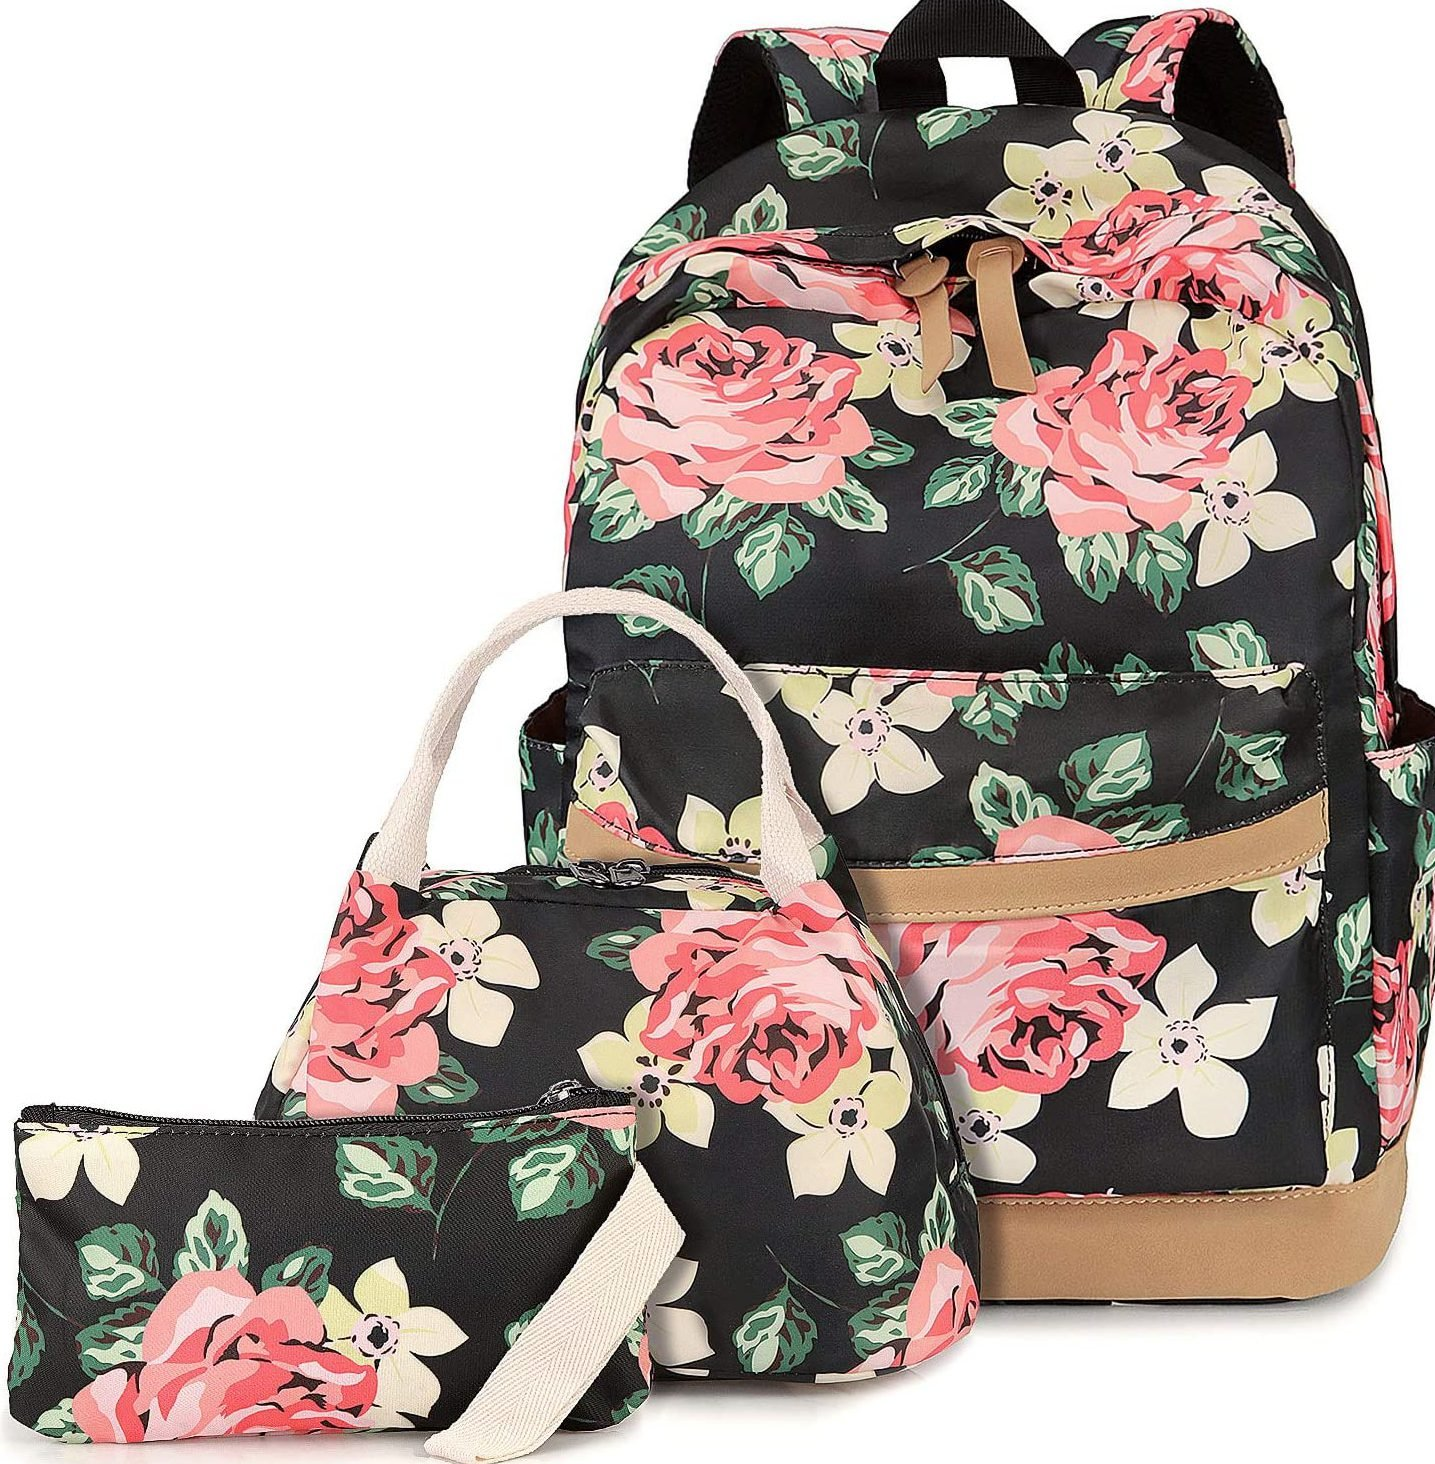 A 3in1 Backpack Set